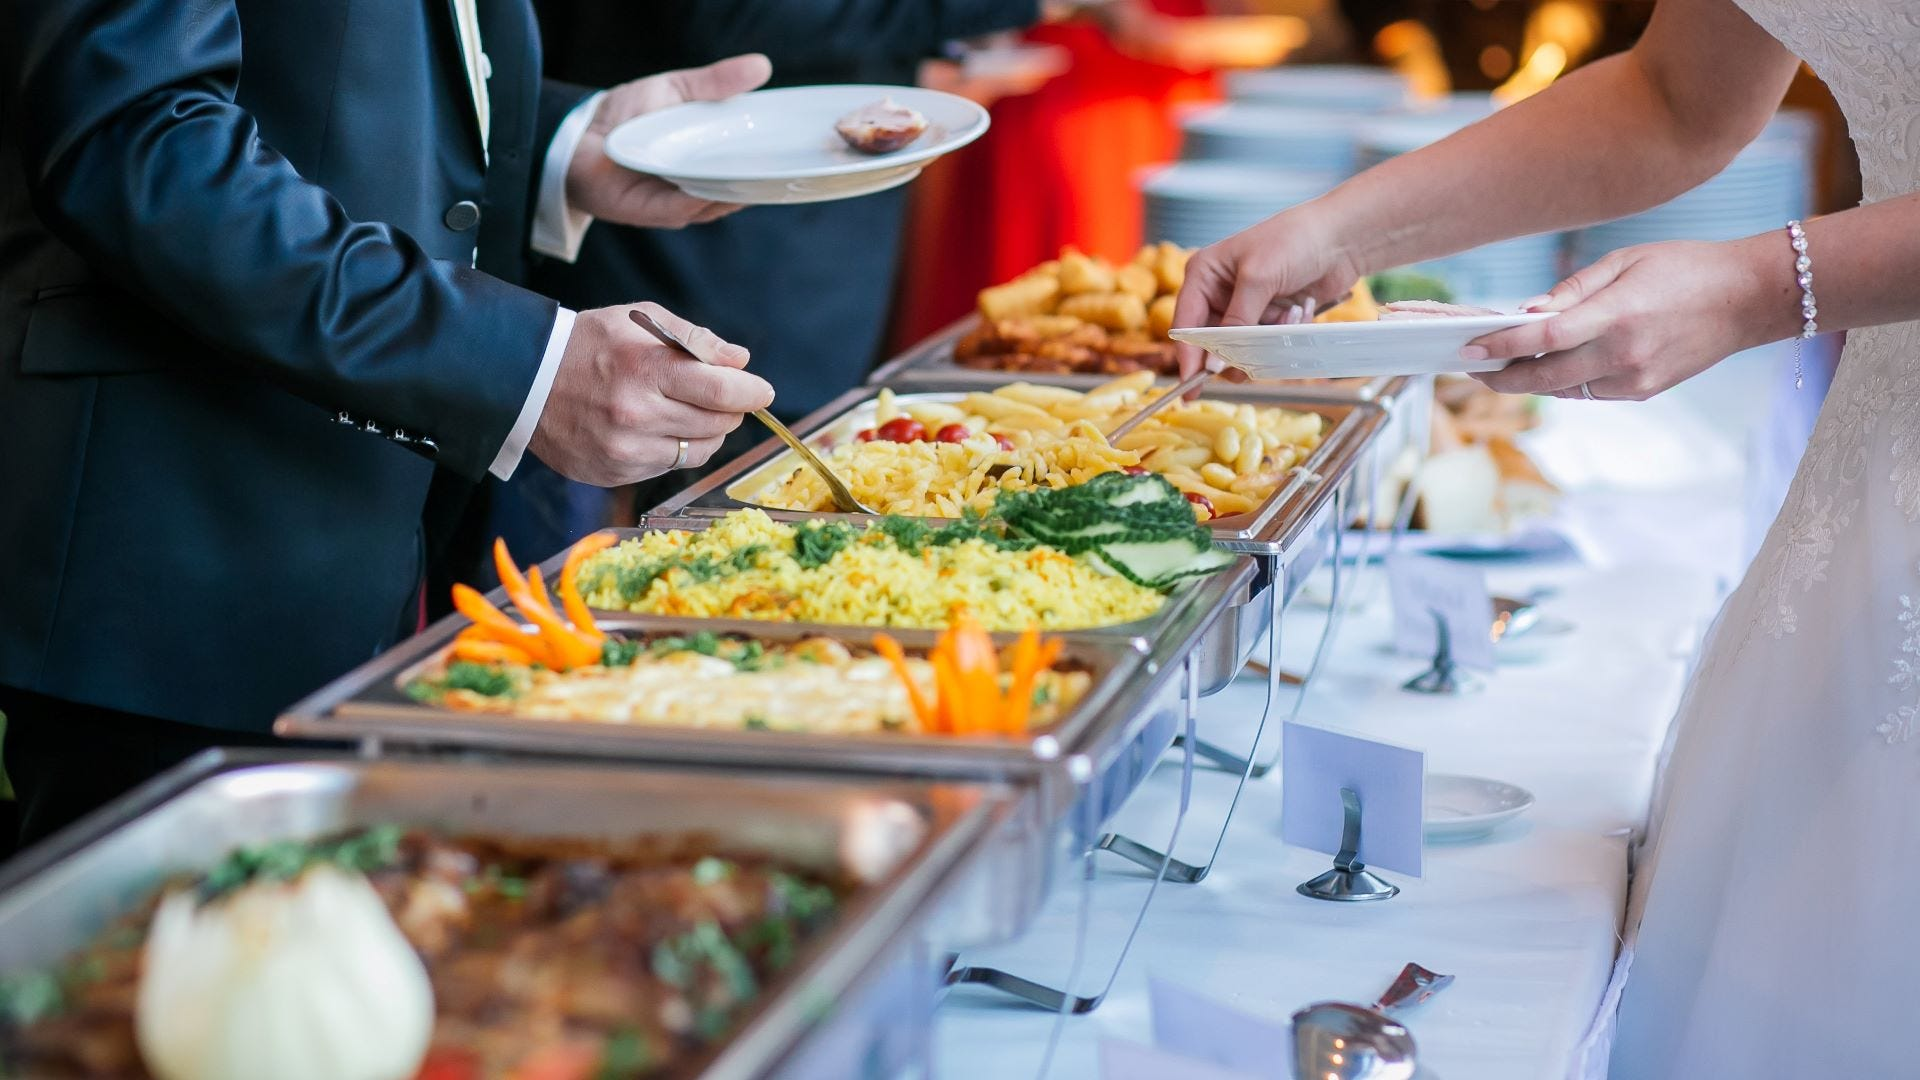 People loading plates at a buffet.